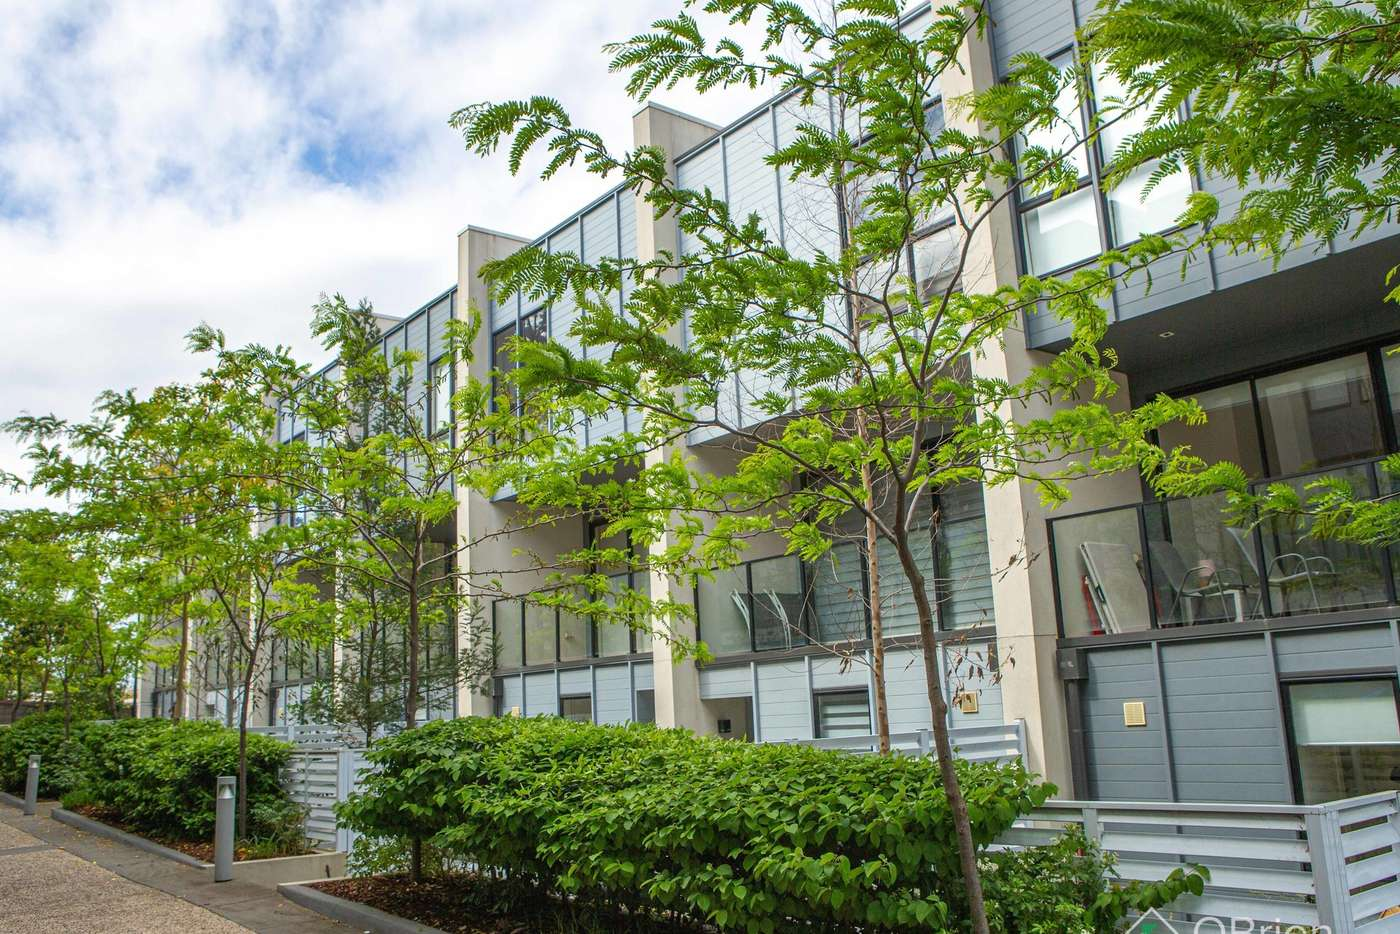 Main view of Homely apartment listing, 5 Yellow Box Lane, Burwood VIC 3125